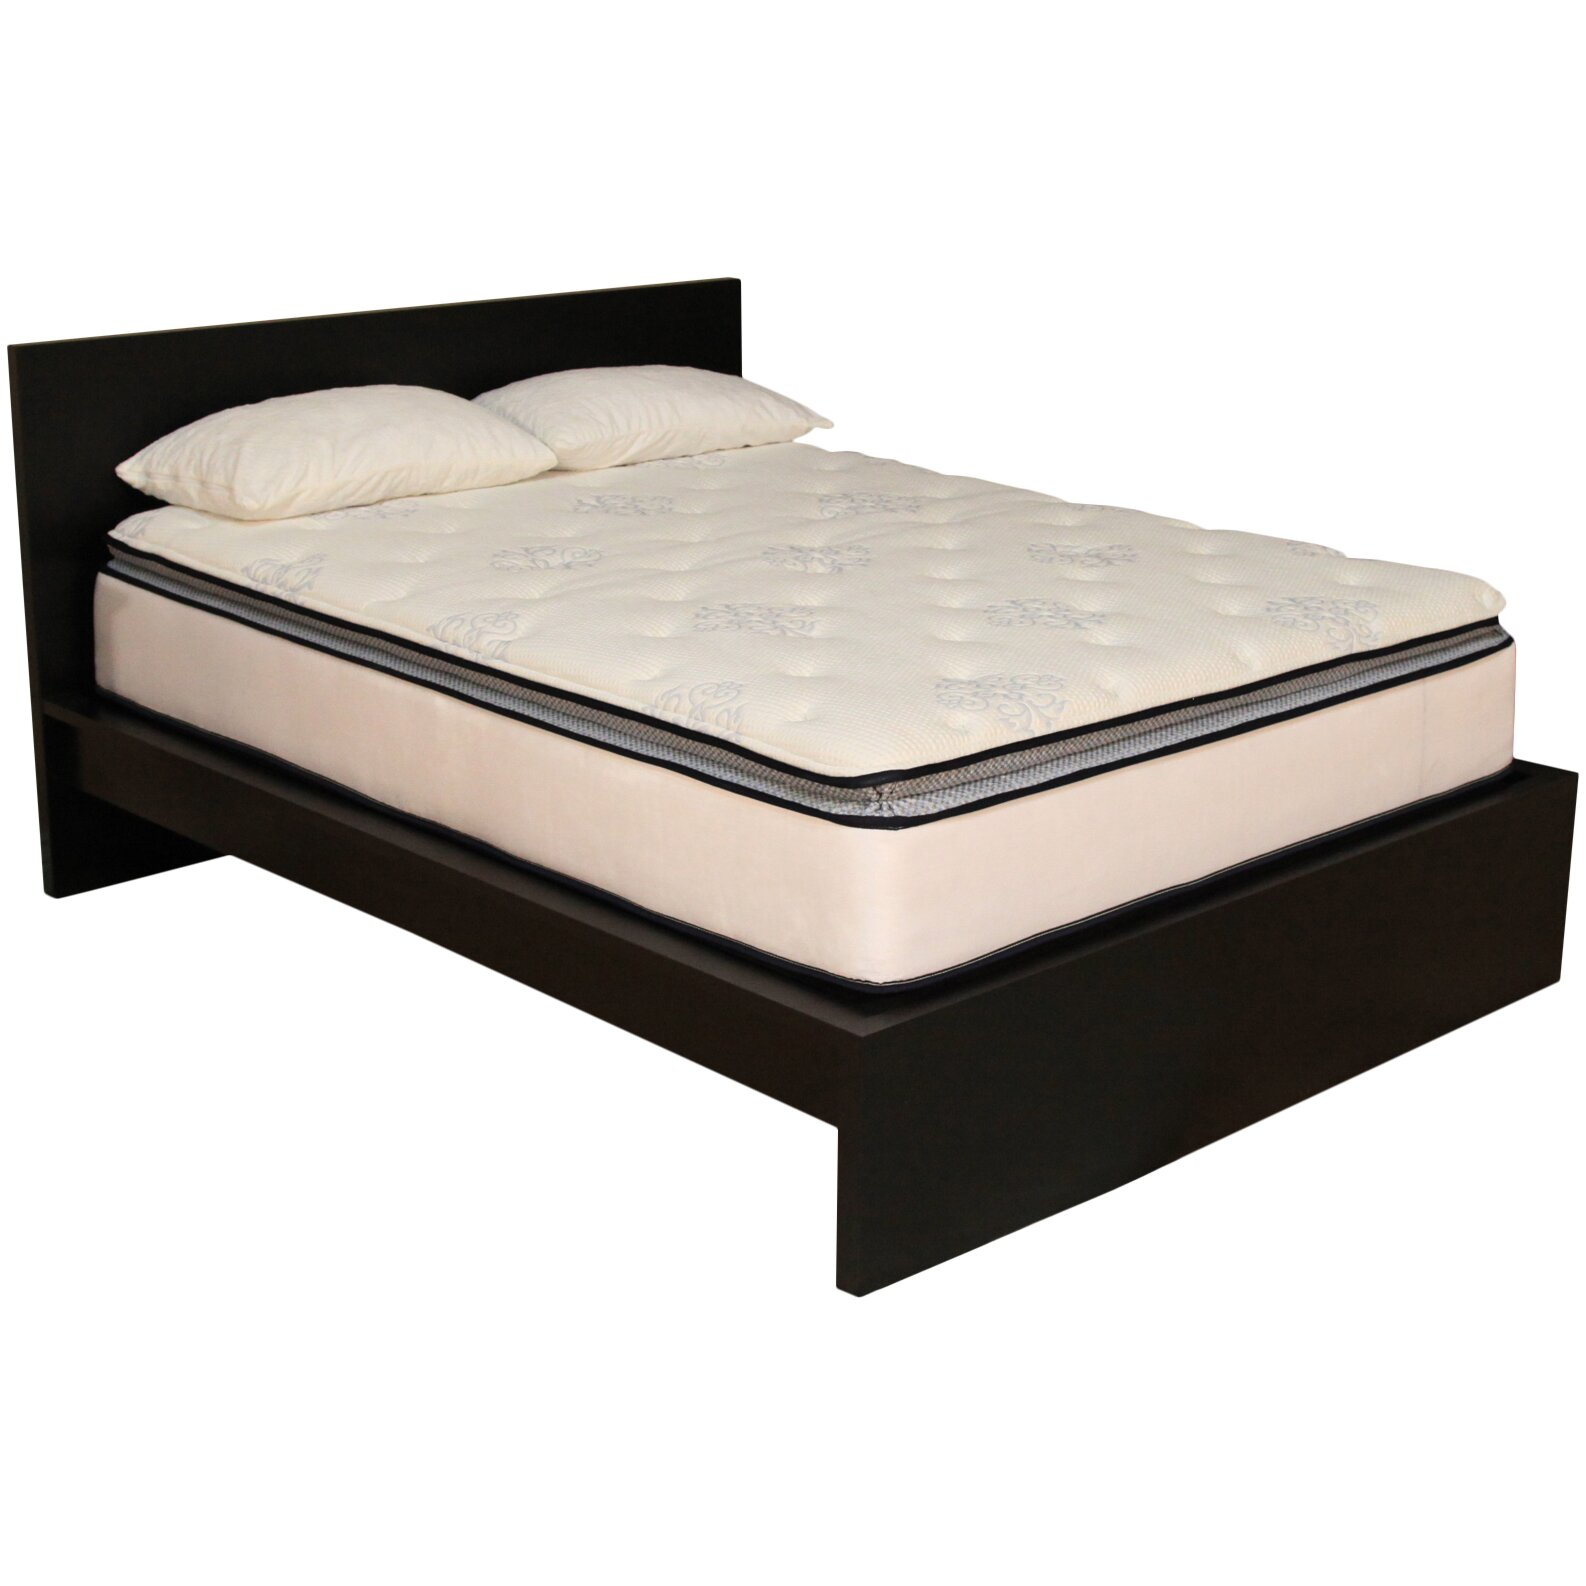 Brooklyn bedding ultimate dreams 12quot firm mattress for Brooklyn bedding store